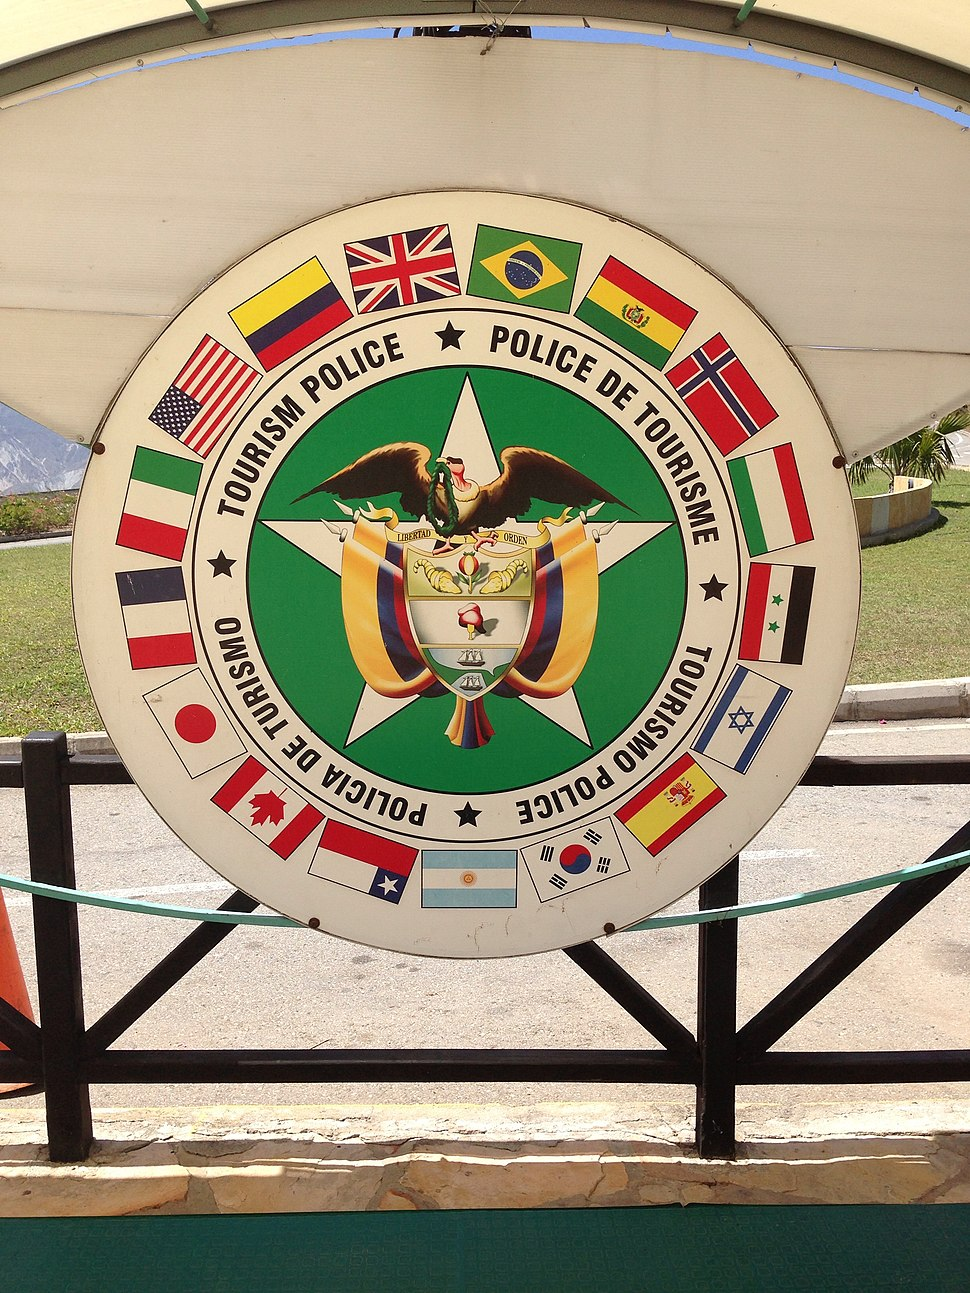 Tourism Police of Colombia at Ca%C3%B1on del Chicamocha National Park 2013-11-05 00-24